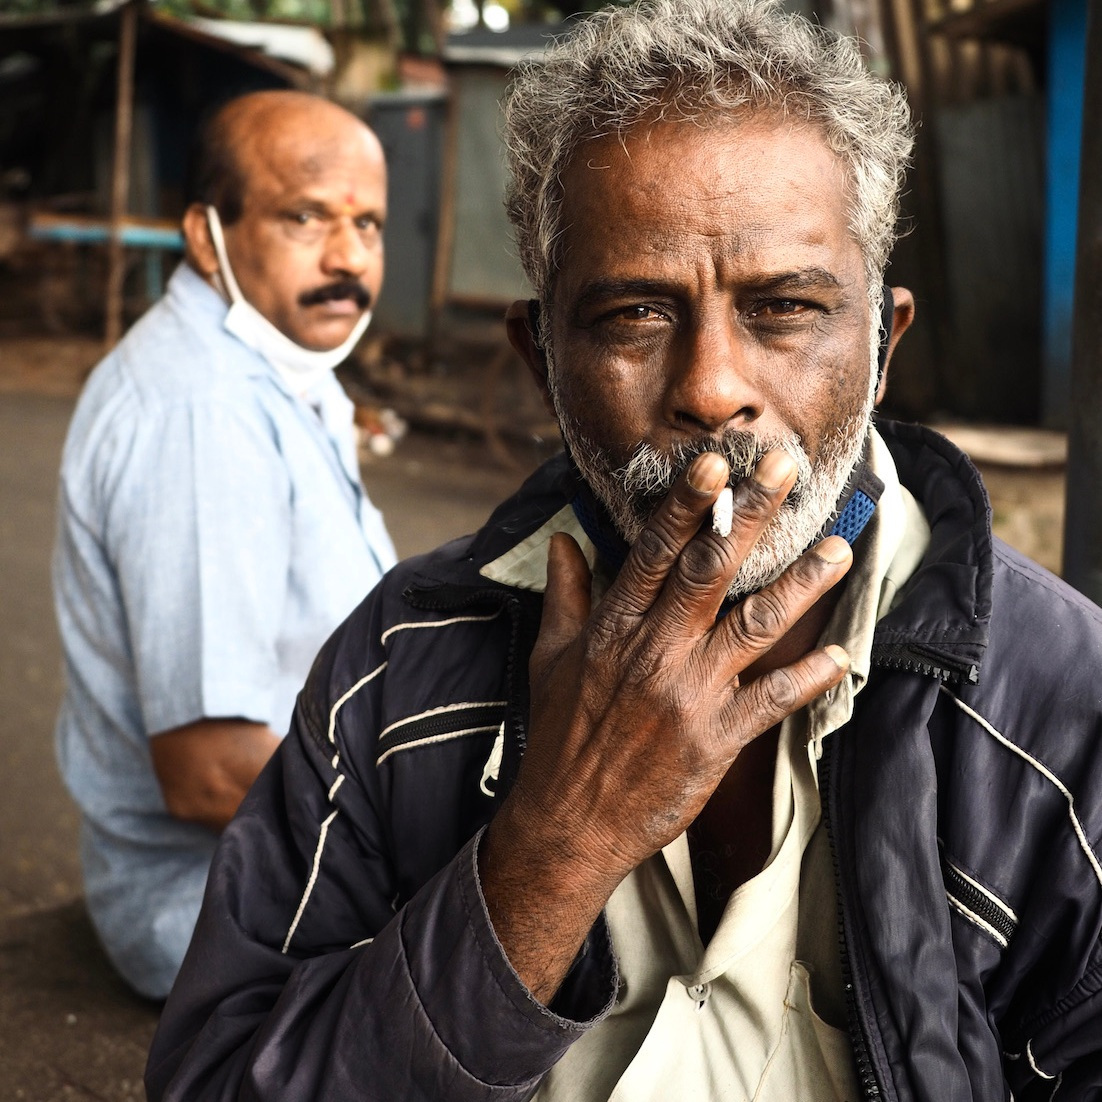 Man with cigarette in his hand.